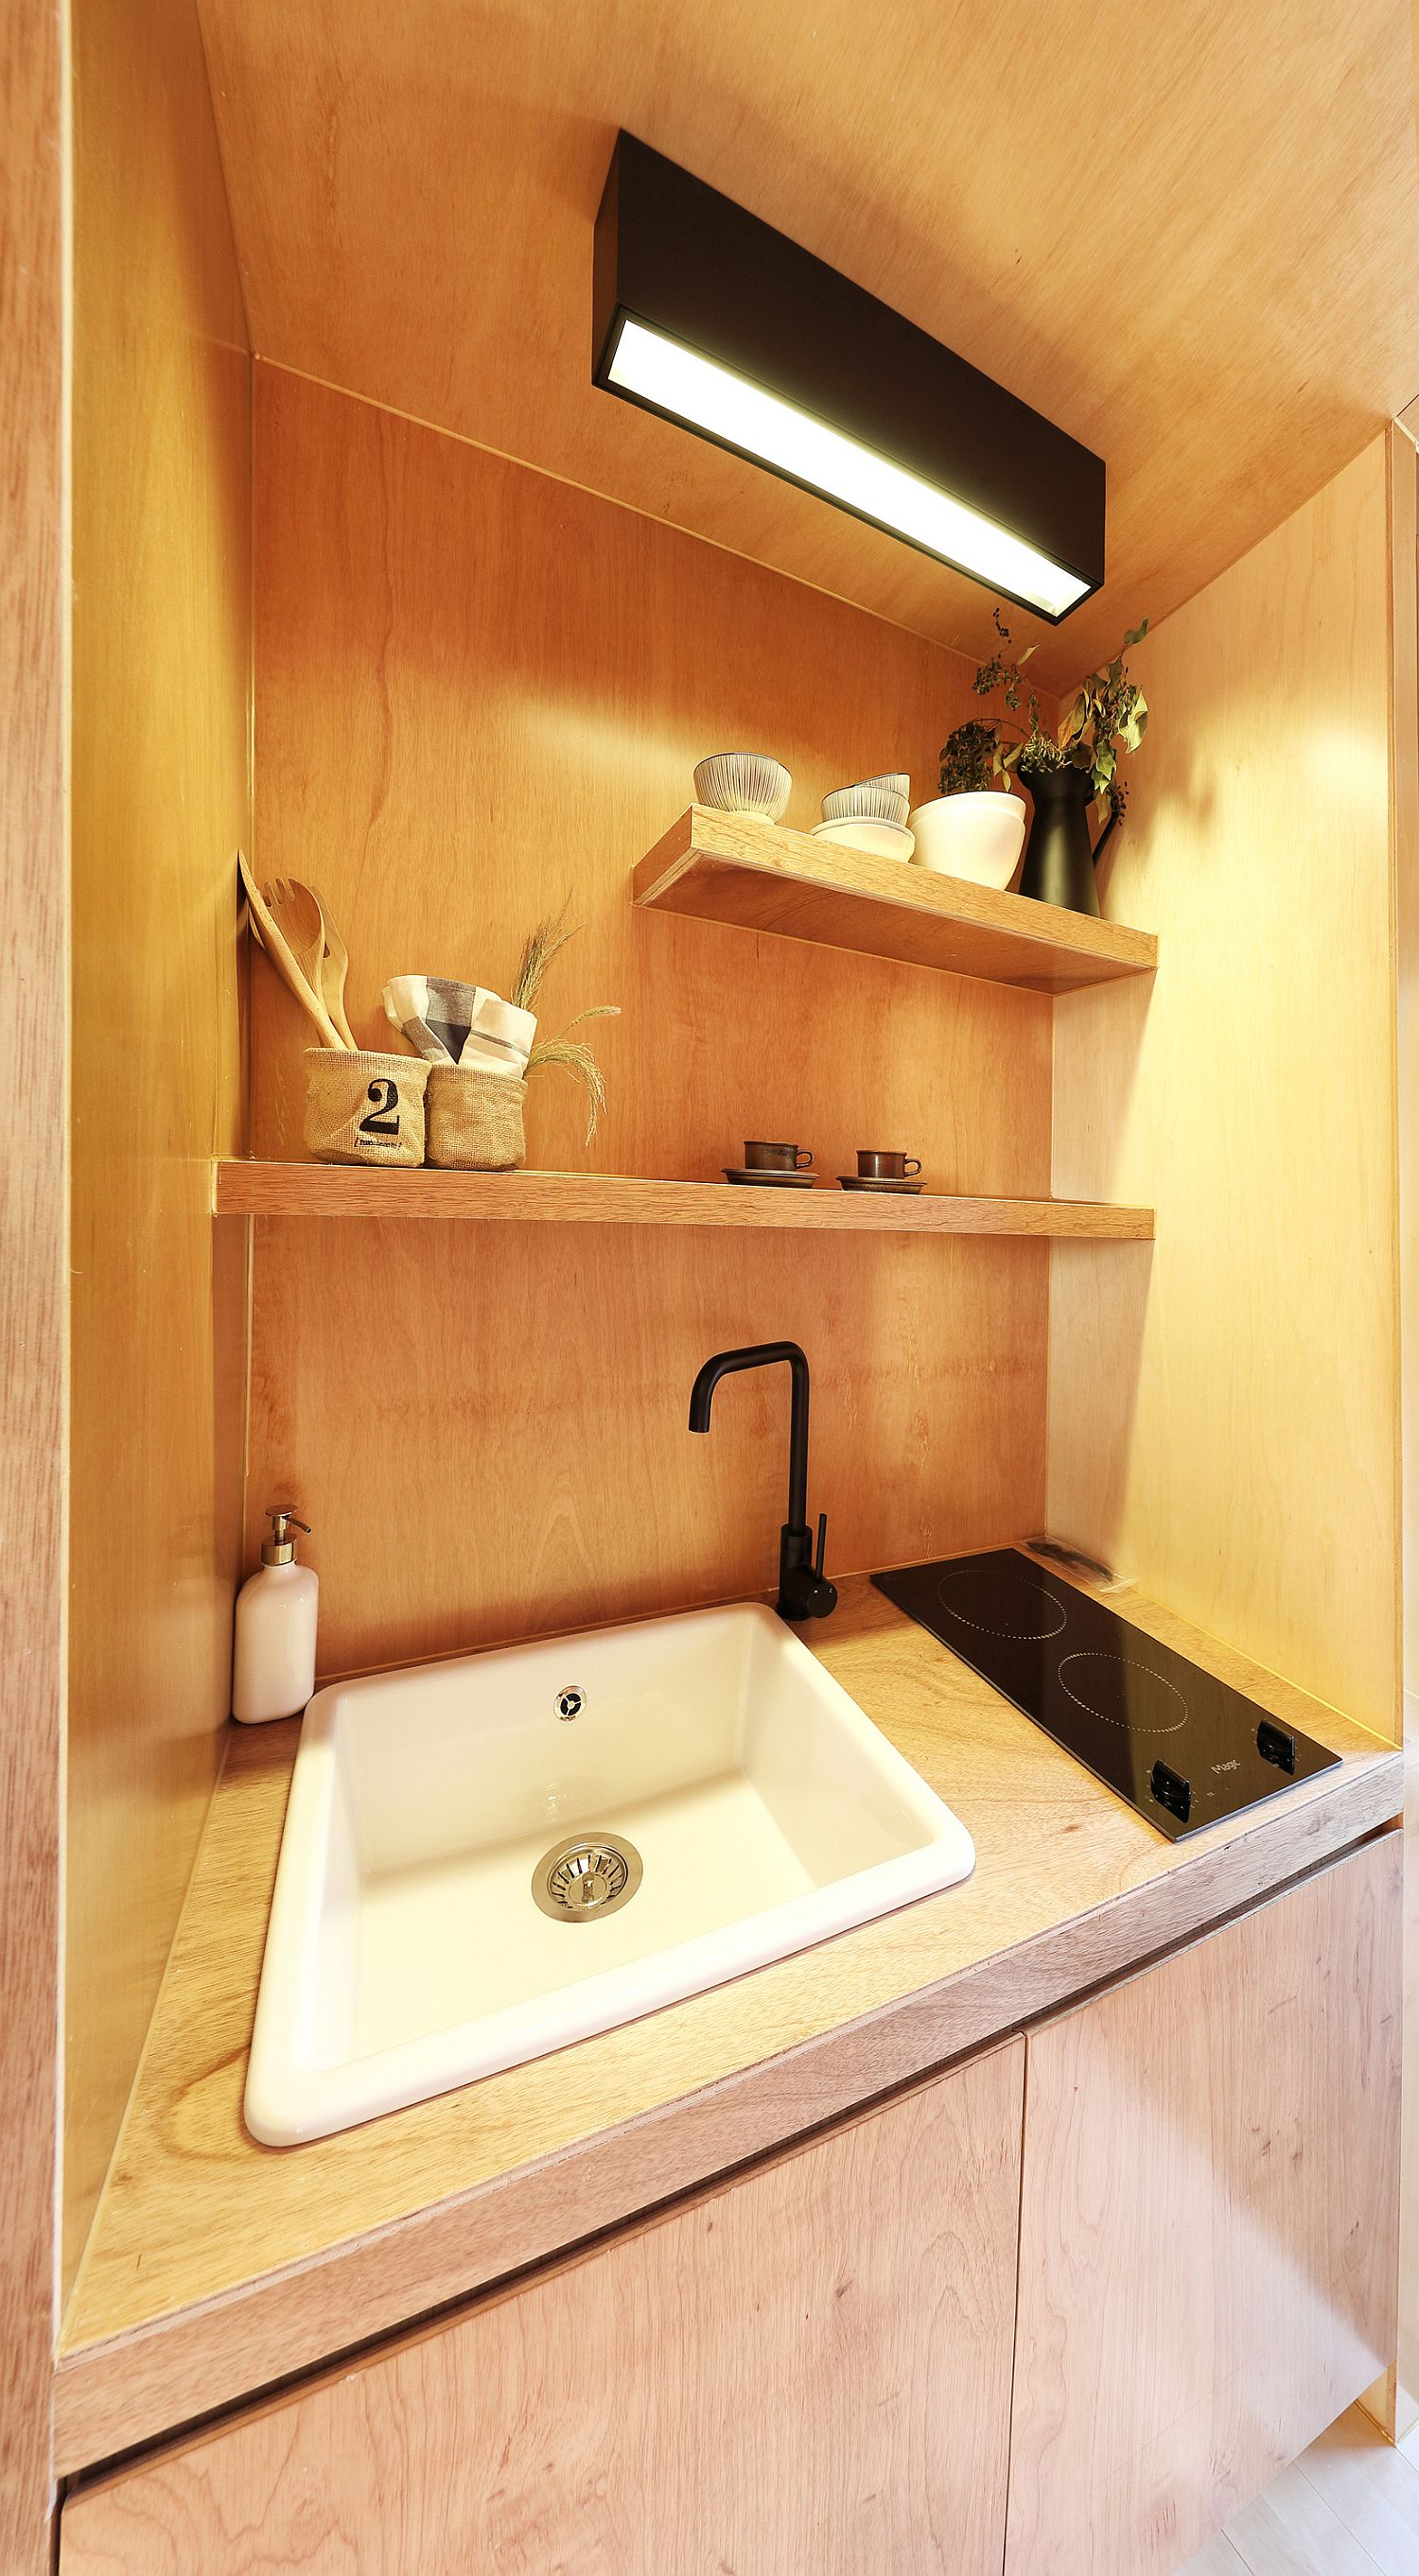 Sink-kitchen-workstation-and-smart-cabinets-placed-carefully-to-create-a-functional-kitchen